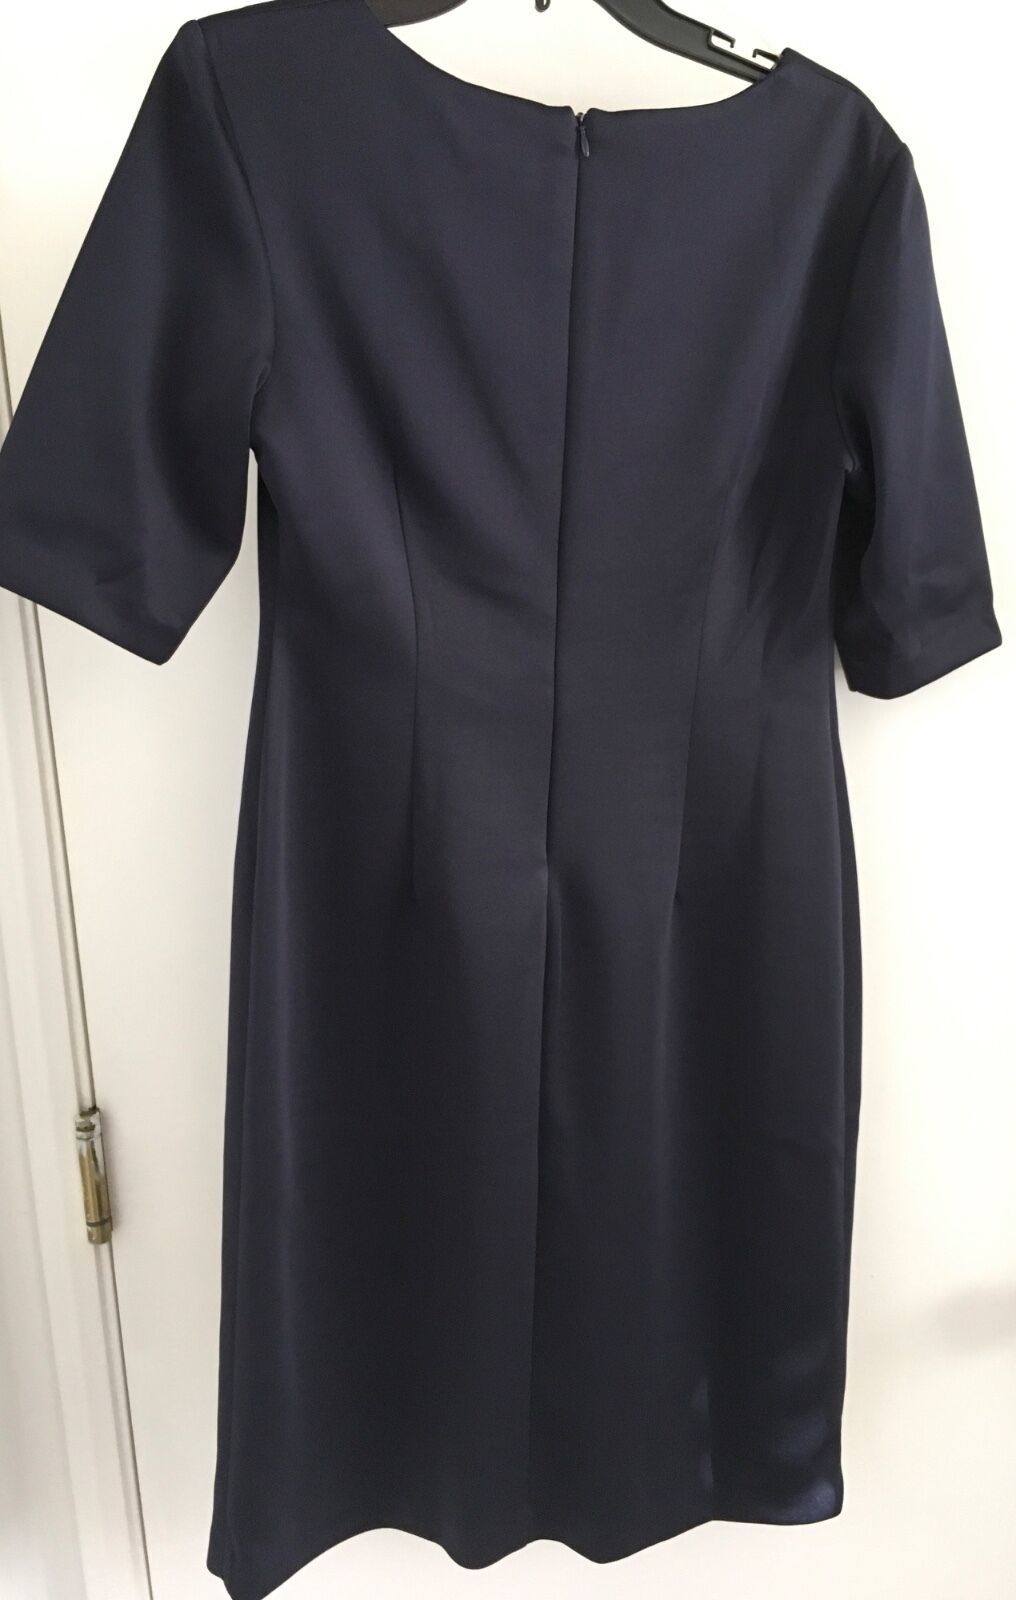 Connected Laser cut Panel Sheath midnight blue with beig insert Dress Size 8 NWT image 3